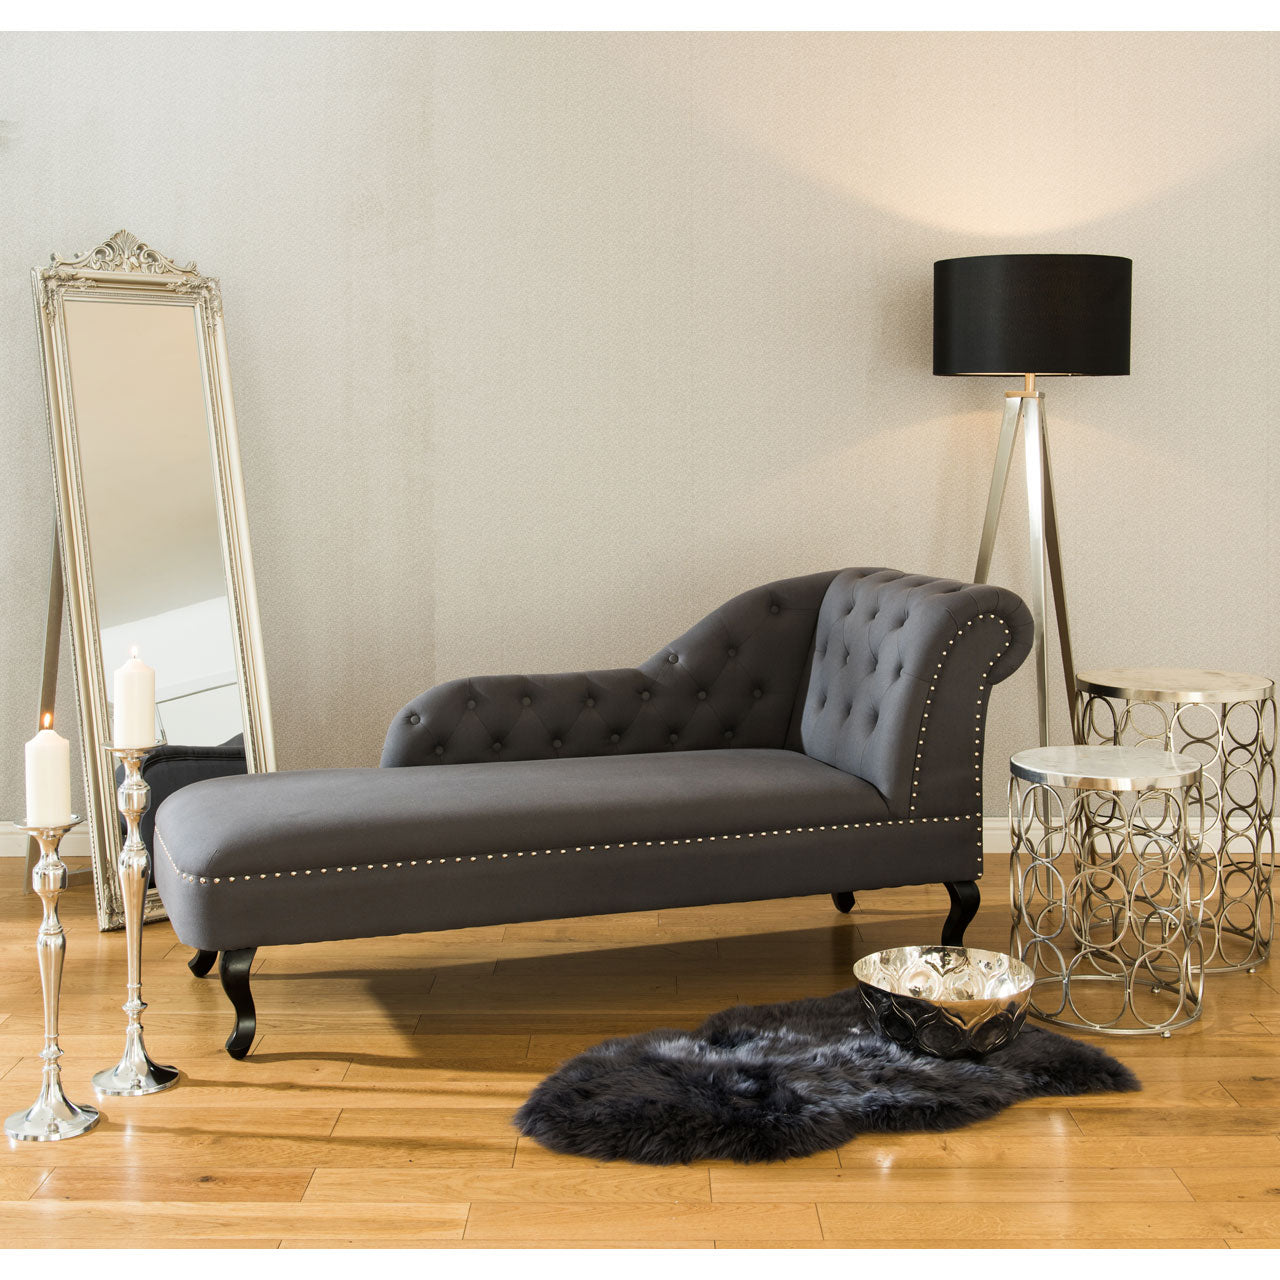 Regents Park Chaise Longue in Grey